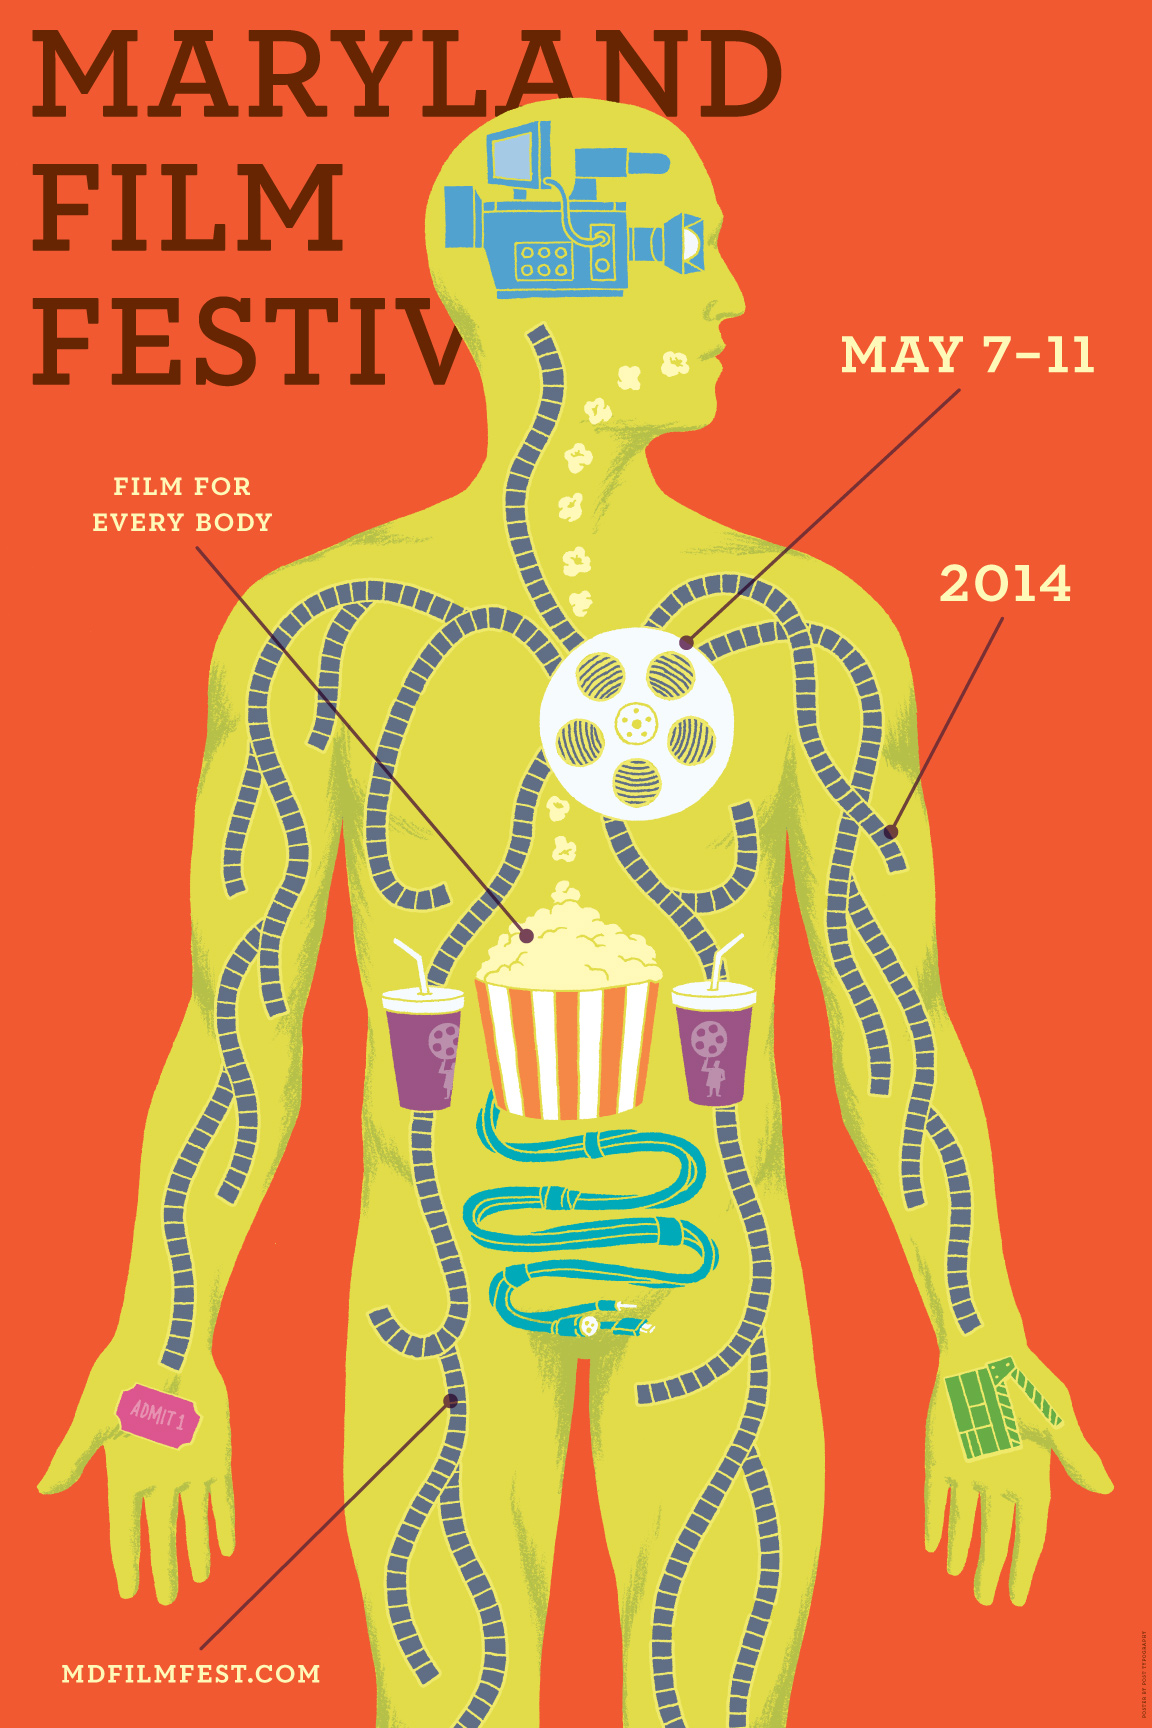 8.5 reasons you should go to Maryland Film Festival